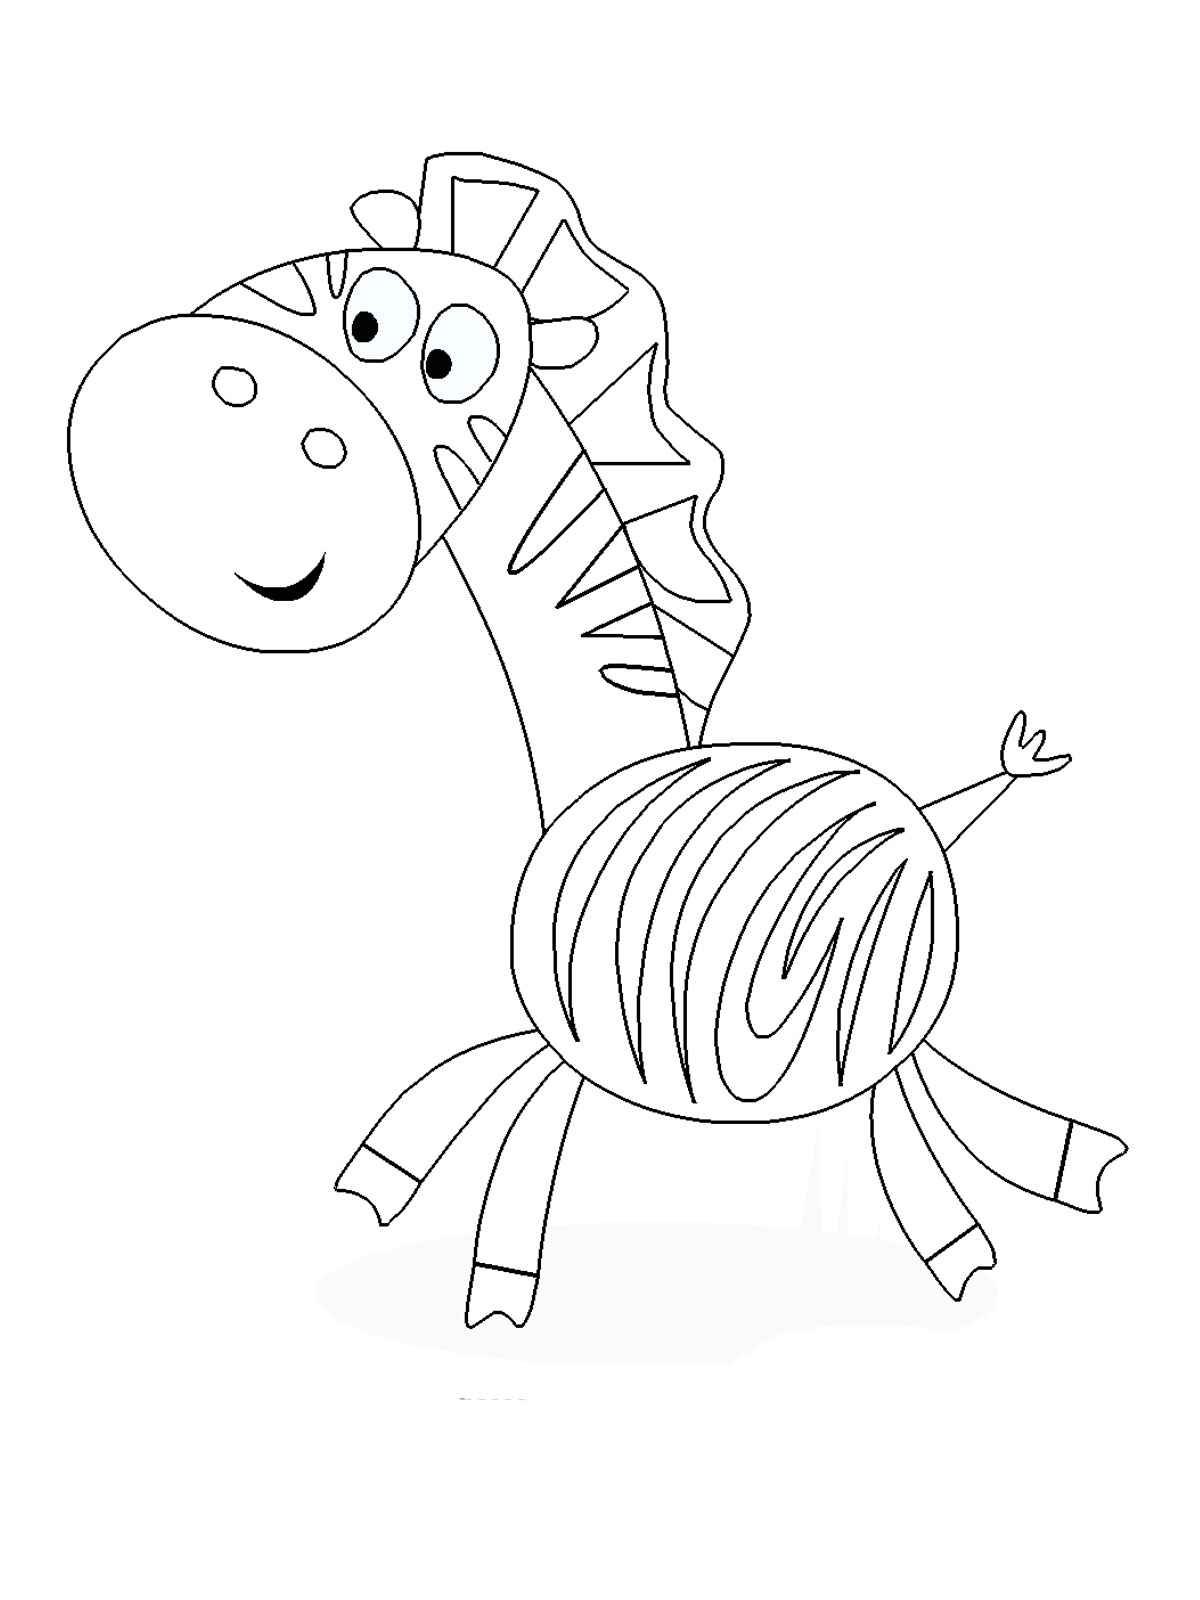 kids coloring pages printable free printable goofy coloring pages for kids kids coloring printable pages